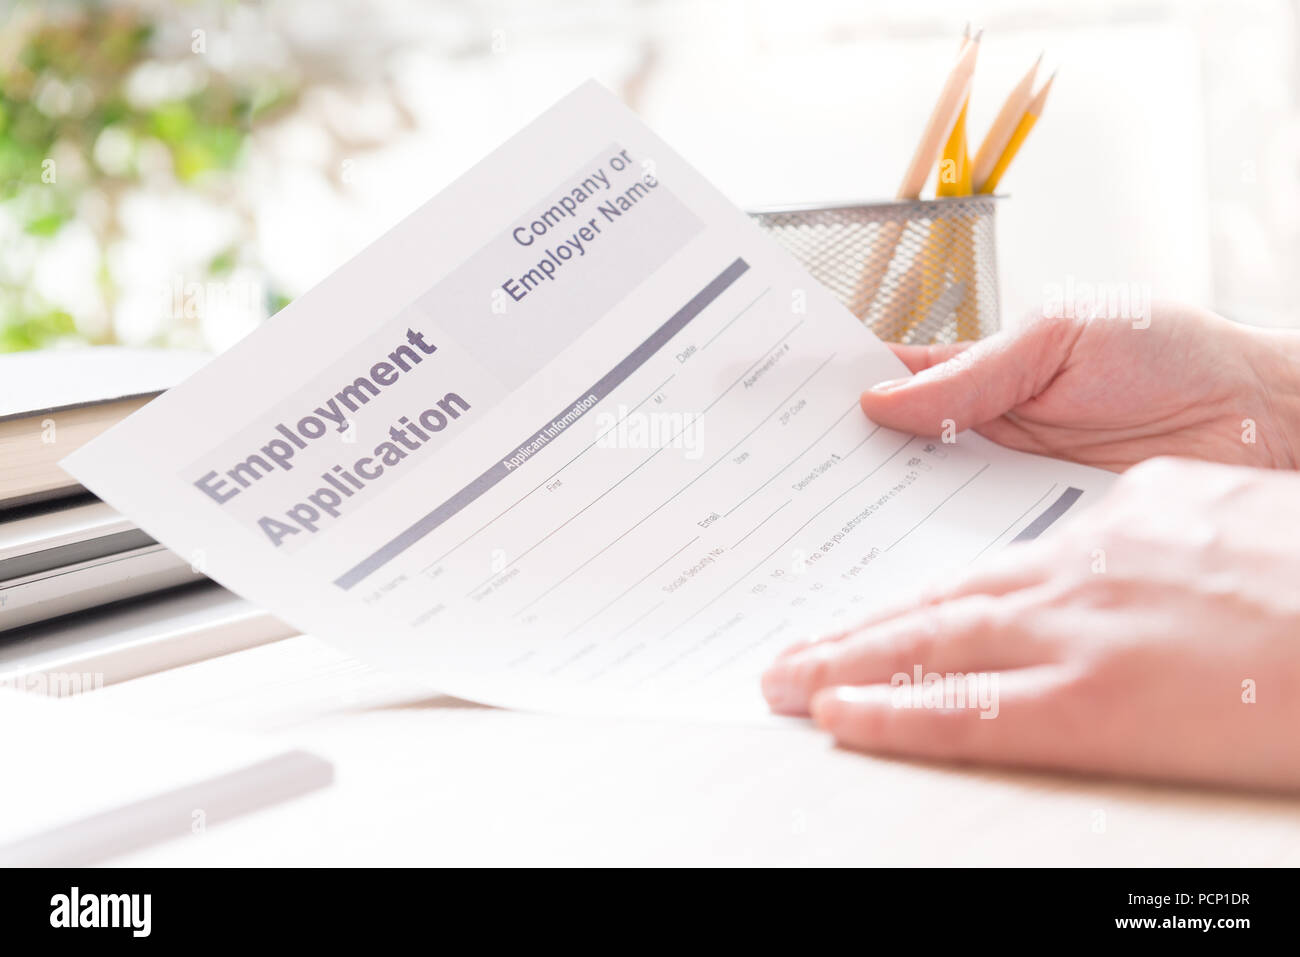 blank employment application form in hands on a desk stock photo